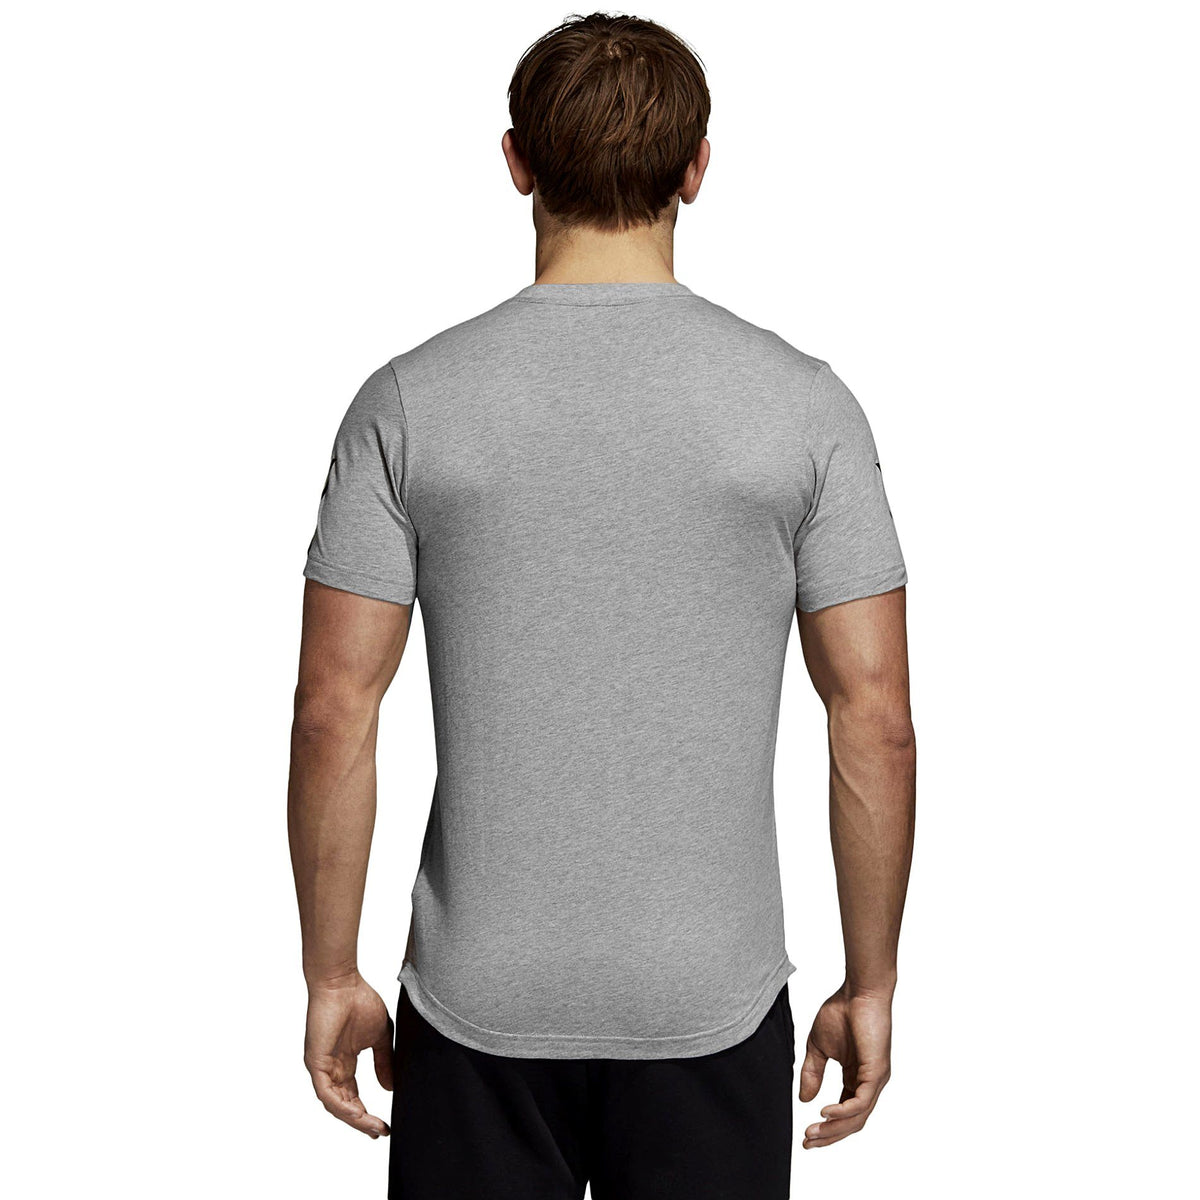 Heather grey badge of sport classic t-shirt